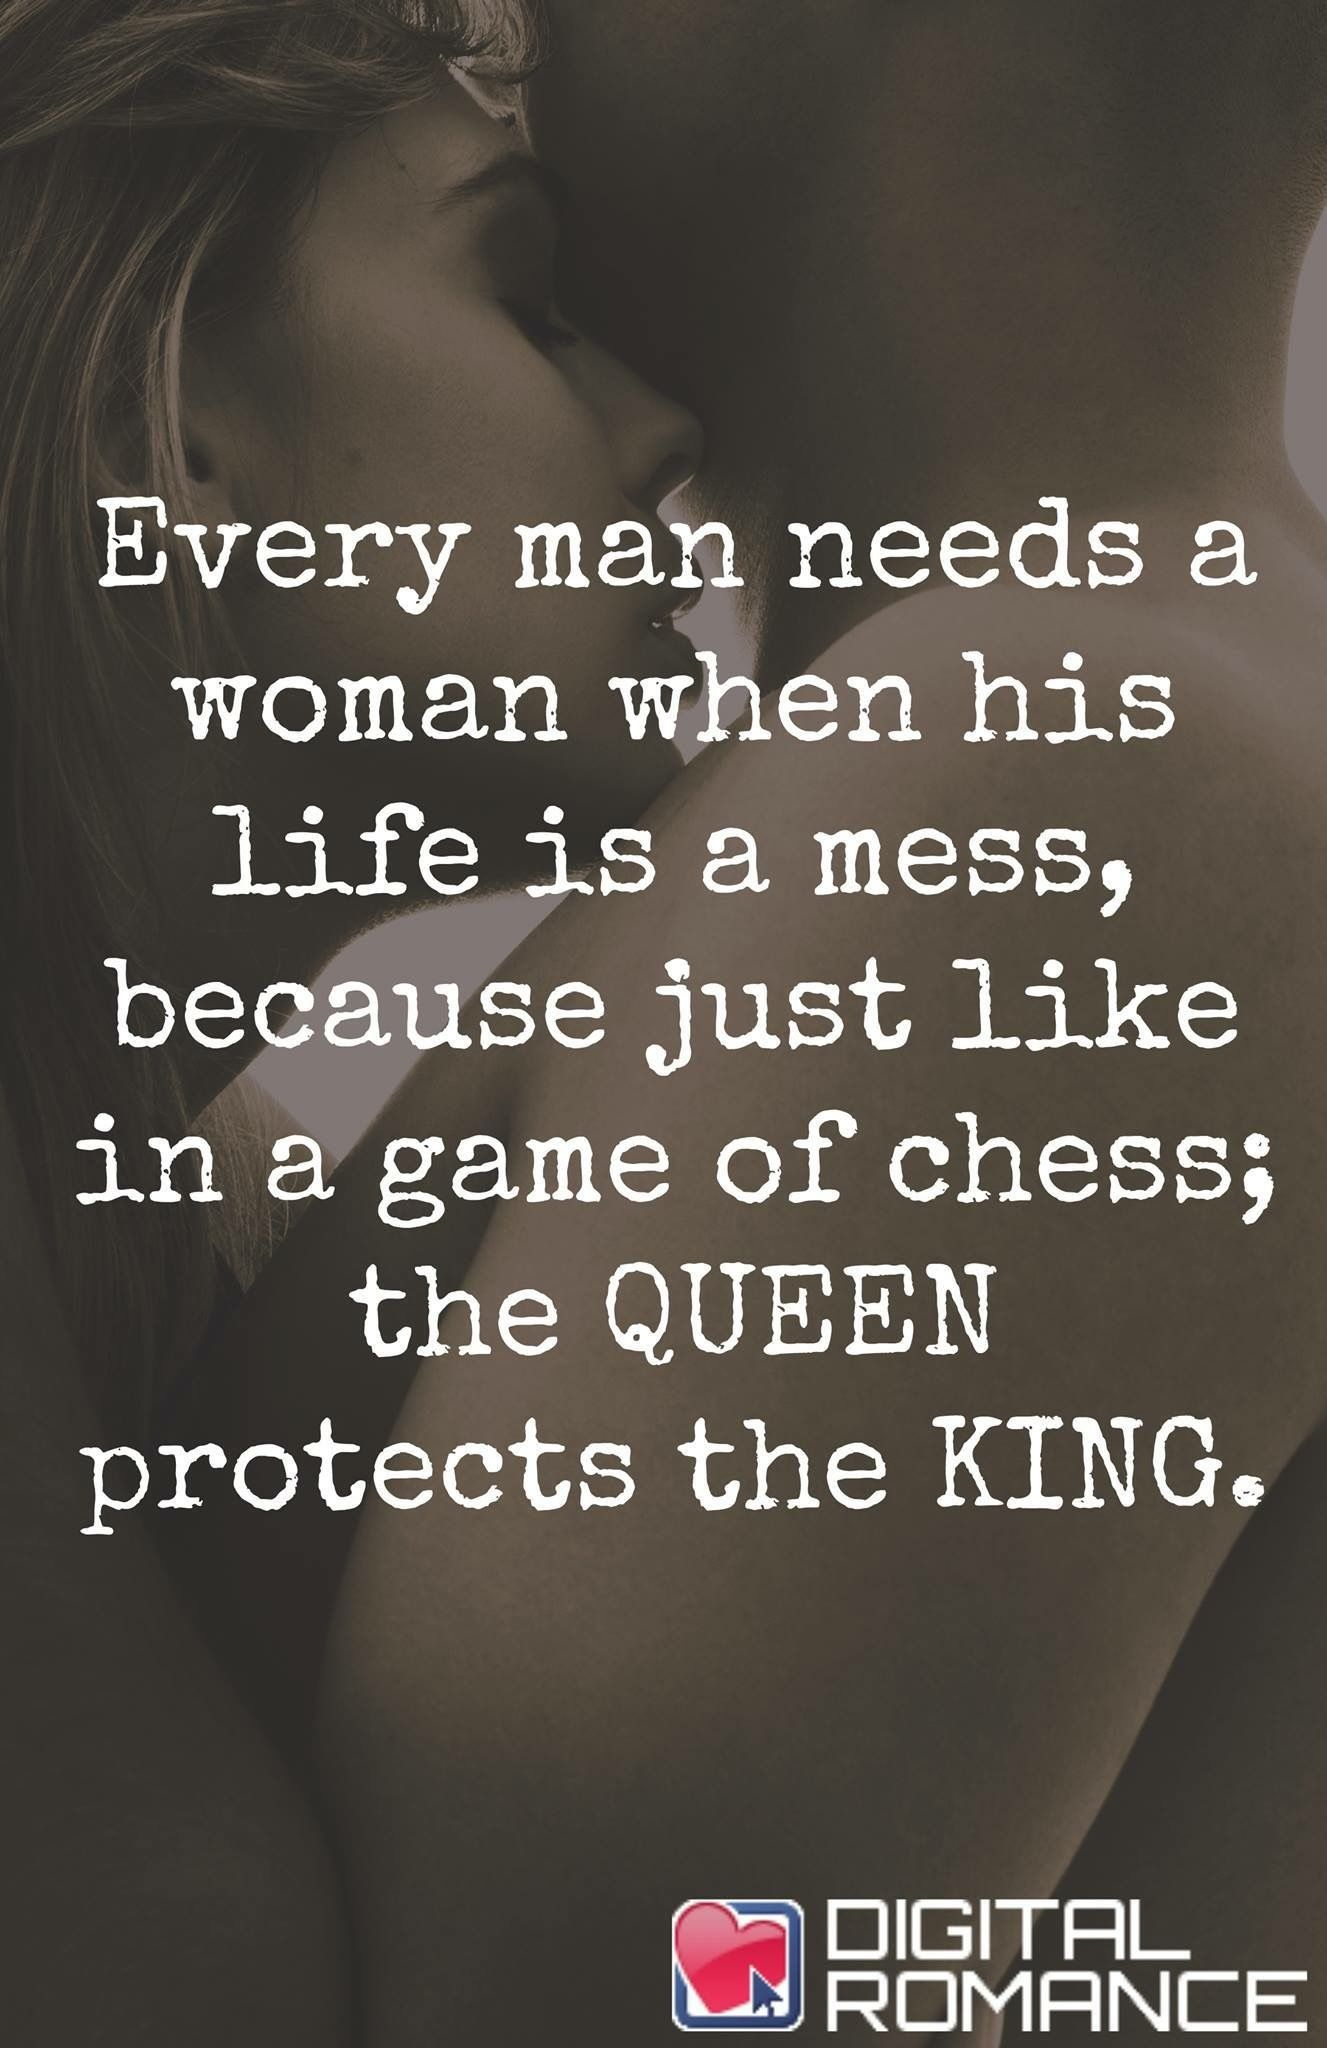 King And Queen Love Quotes Endearing Pincarmen Padin On Quotes  Pinterest  Relationships